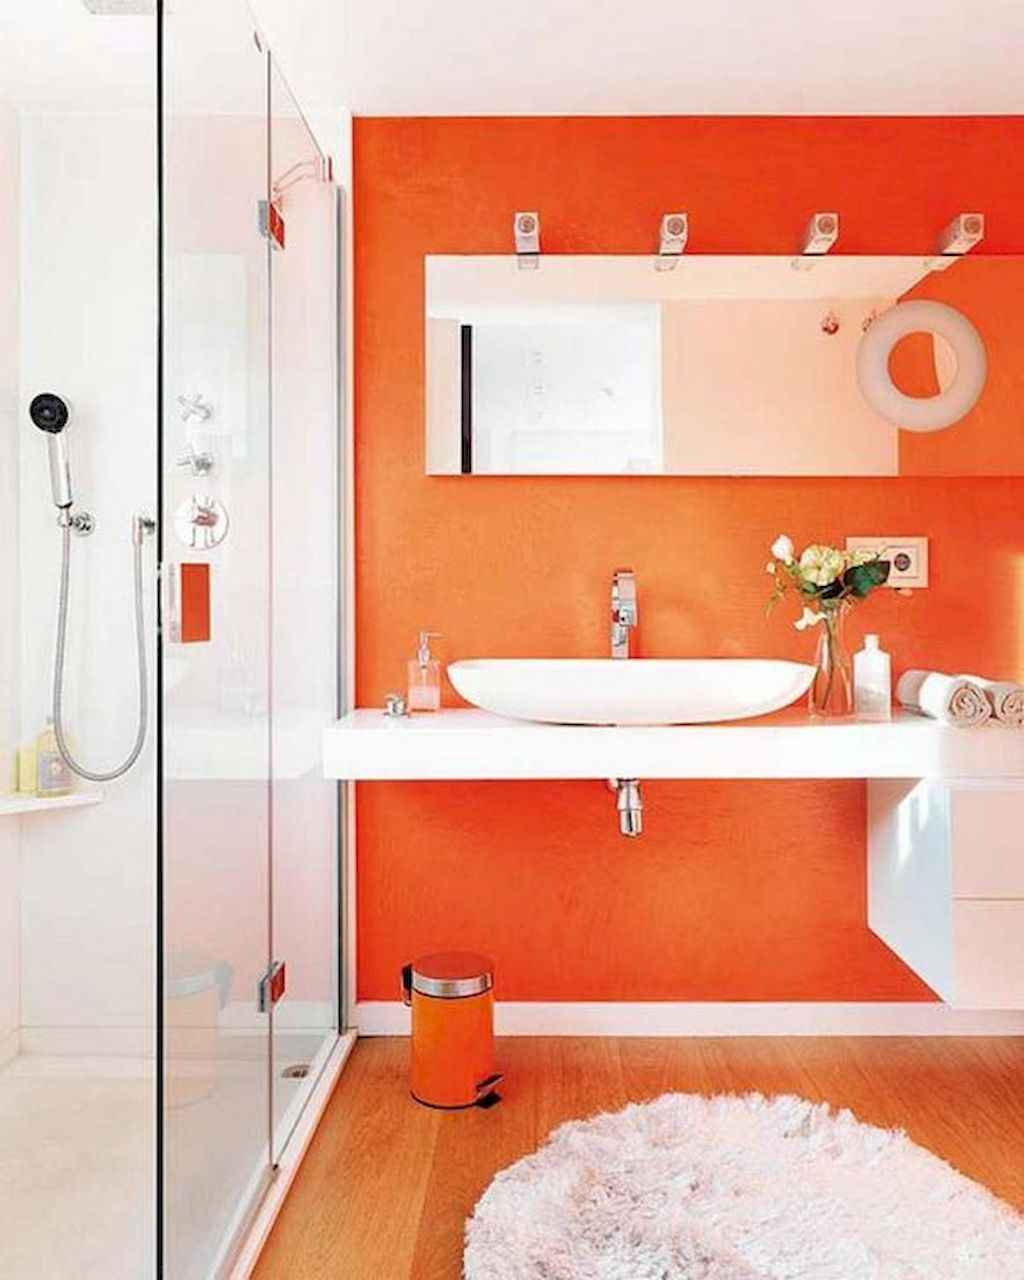 55 cool and relax bathroom design ideas (43)